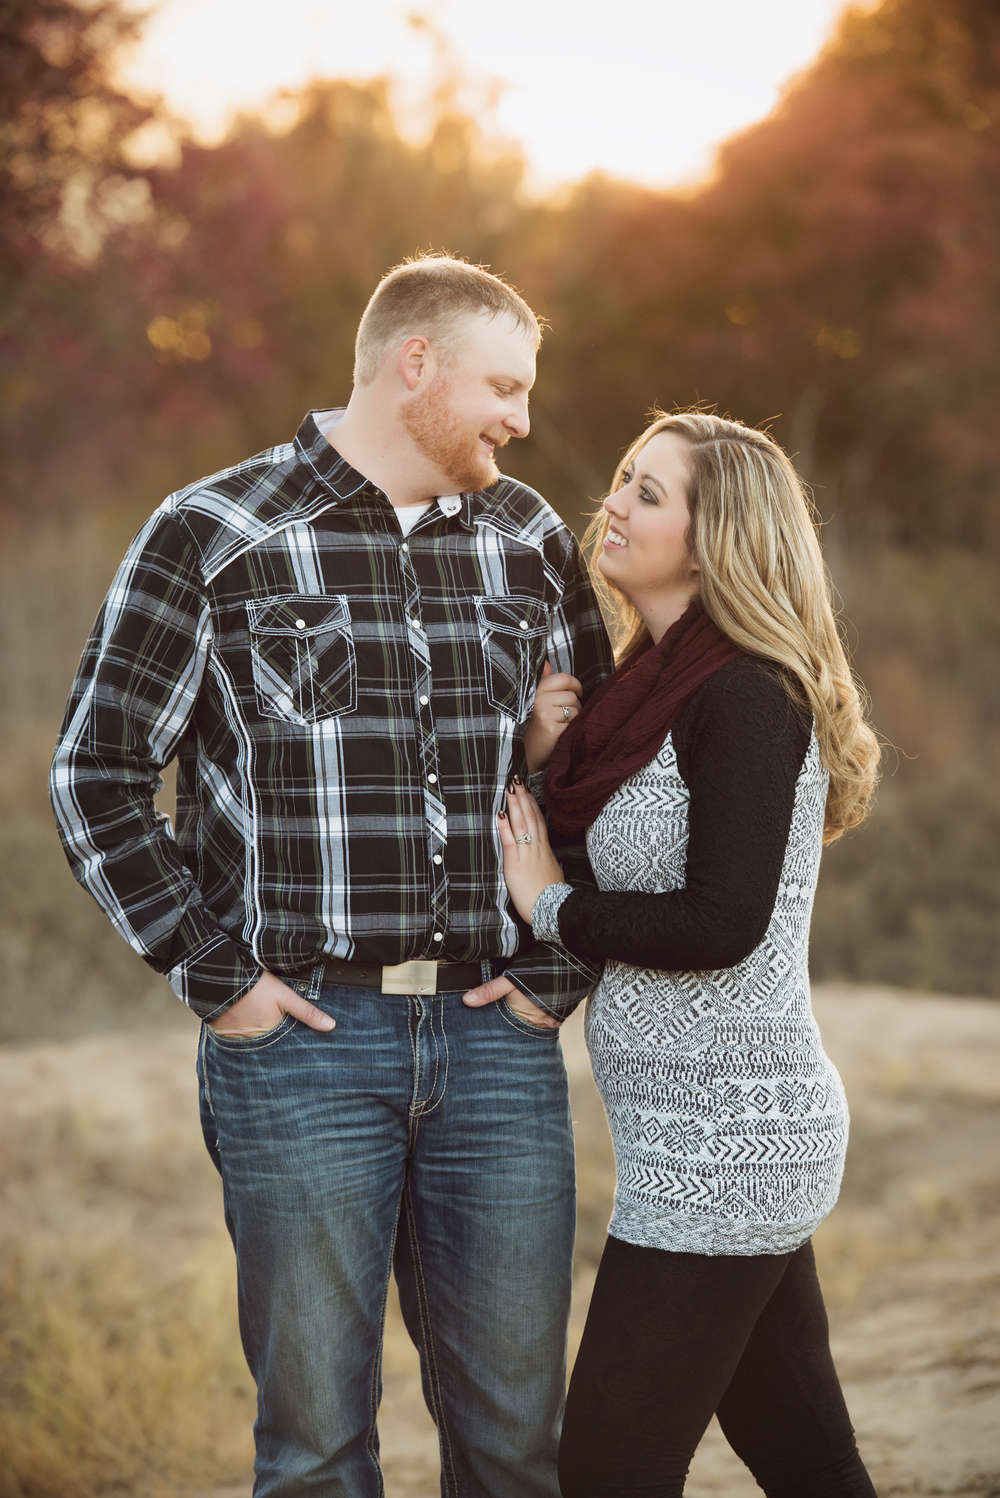 engagement-photography-gardencity-ks-10.jpg